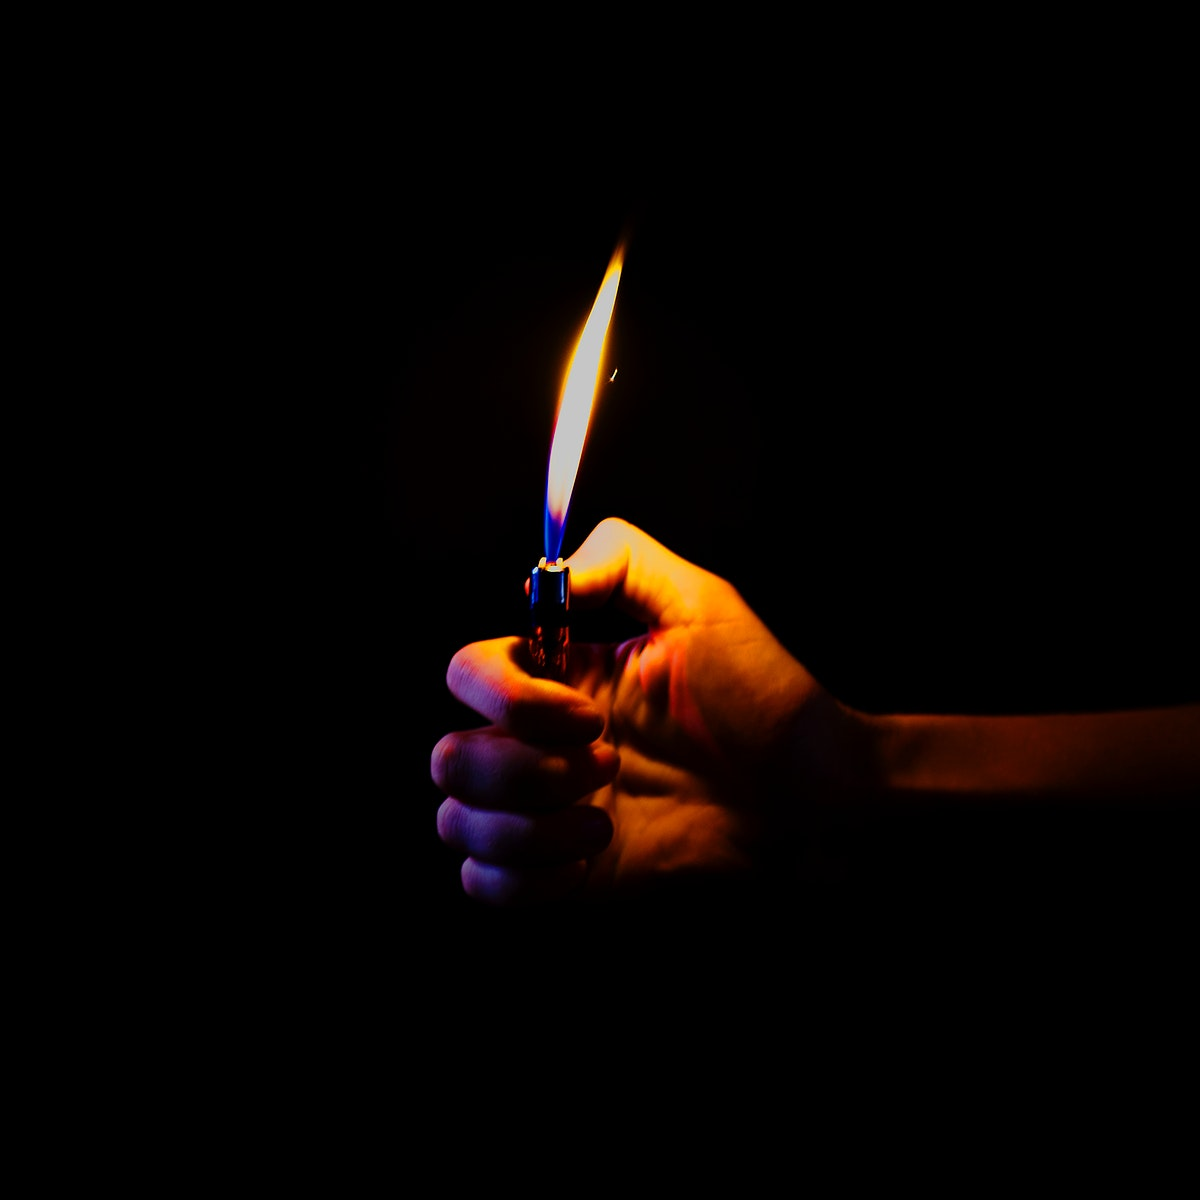 Hand holding a lit lighter in the dark